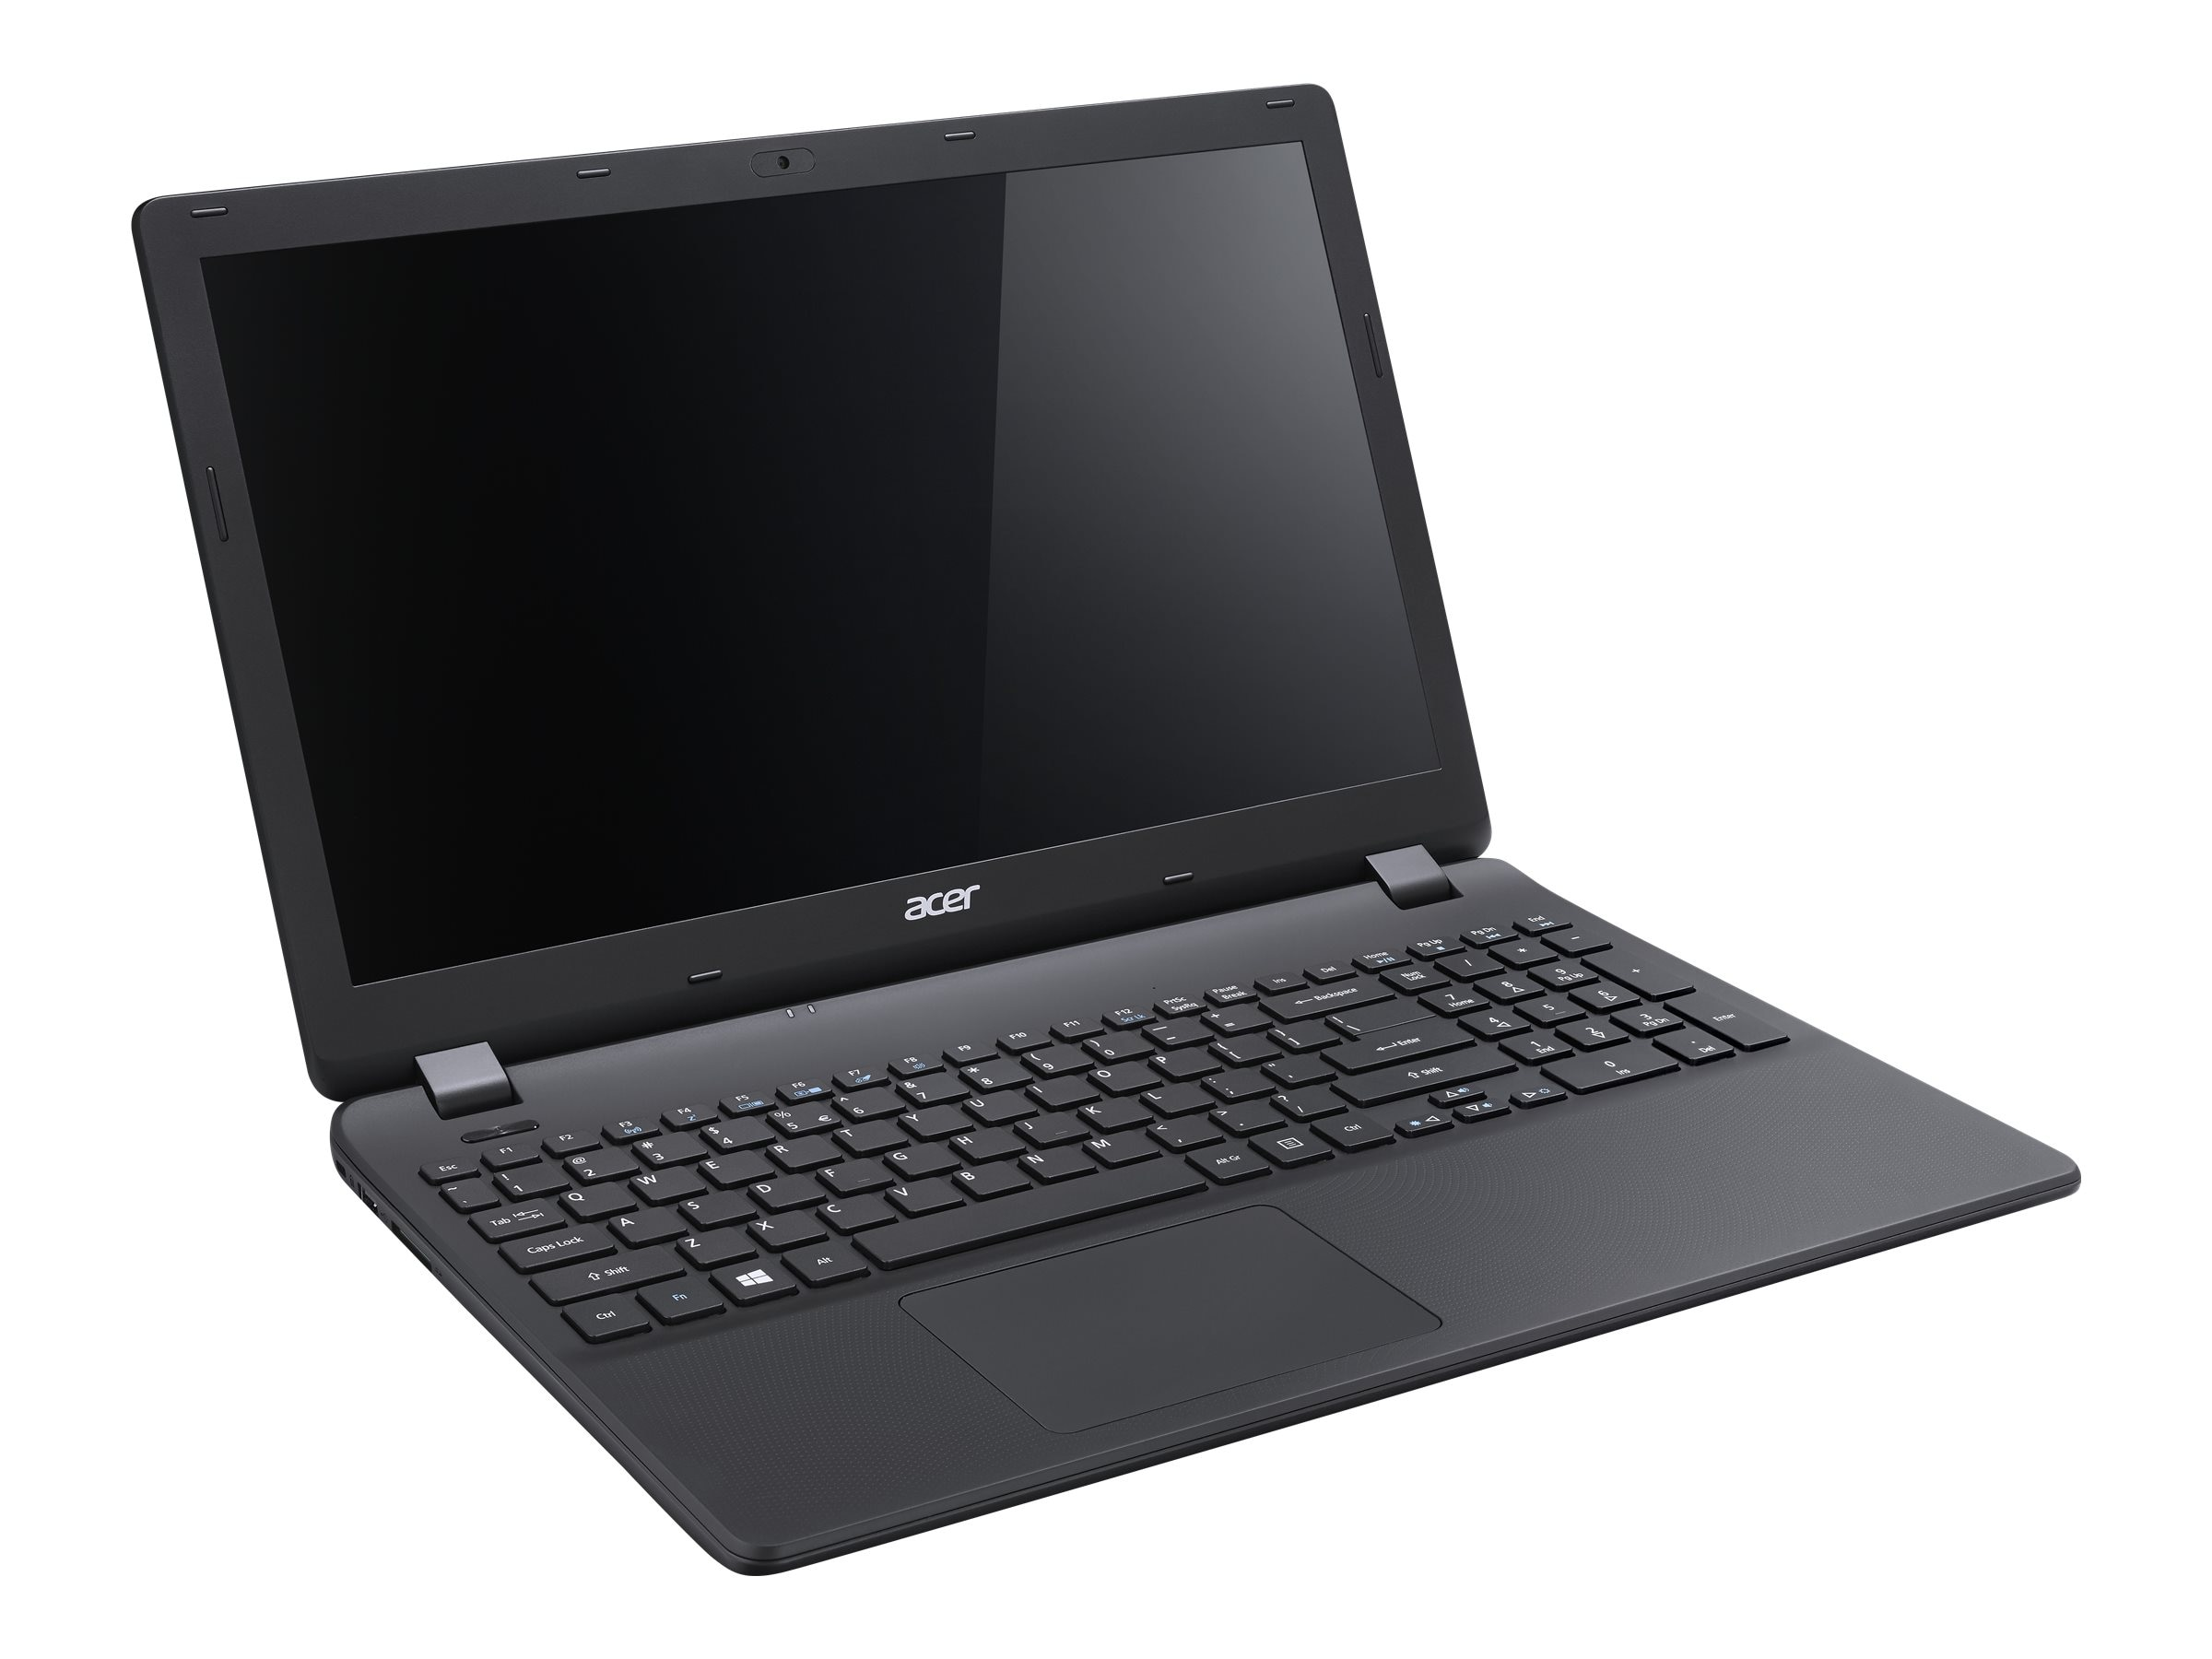 Acer NX.GCEAA.004 Image 5